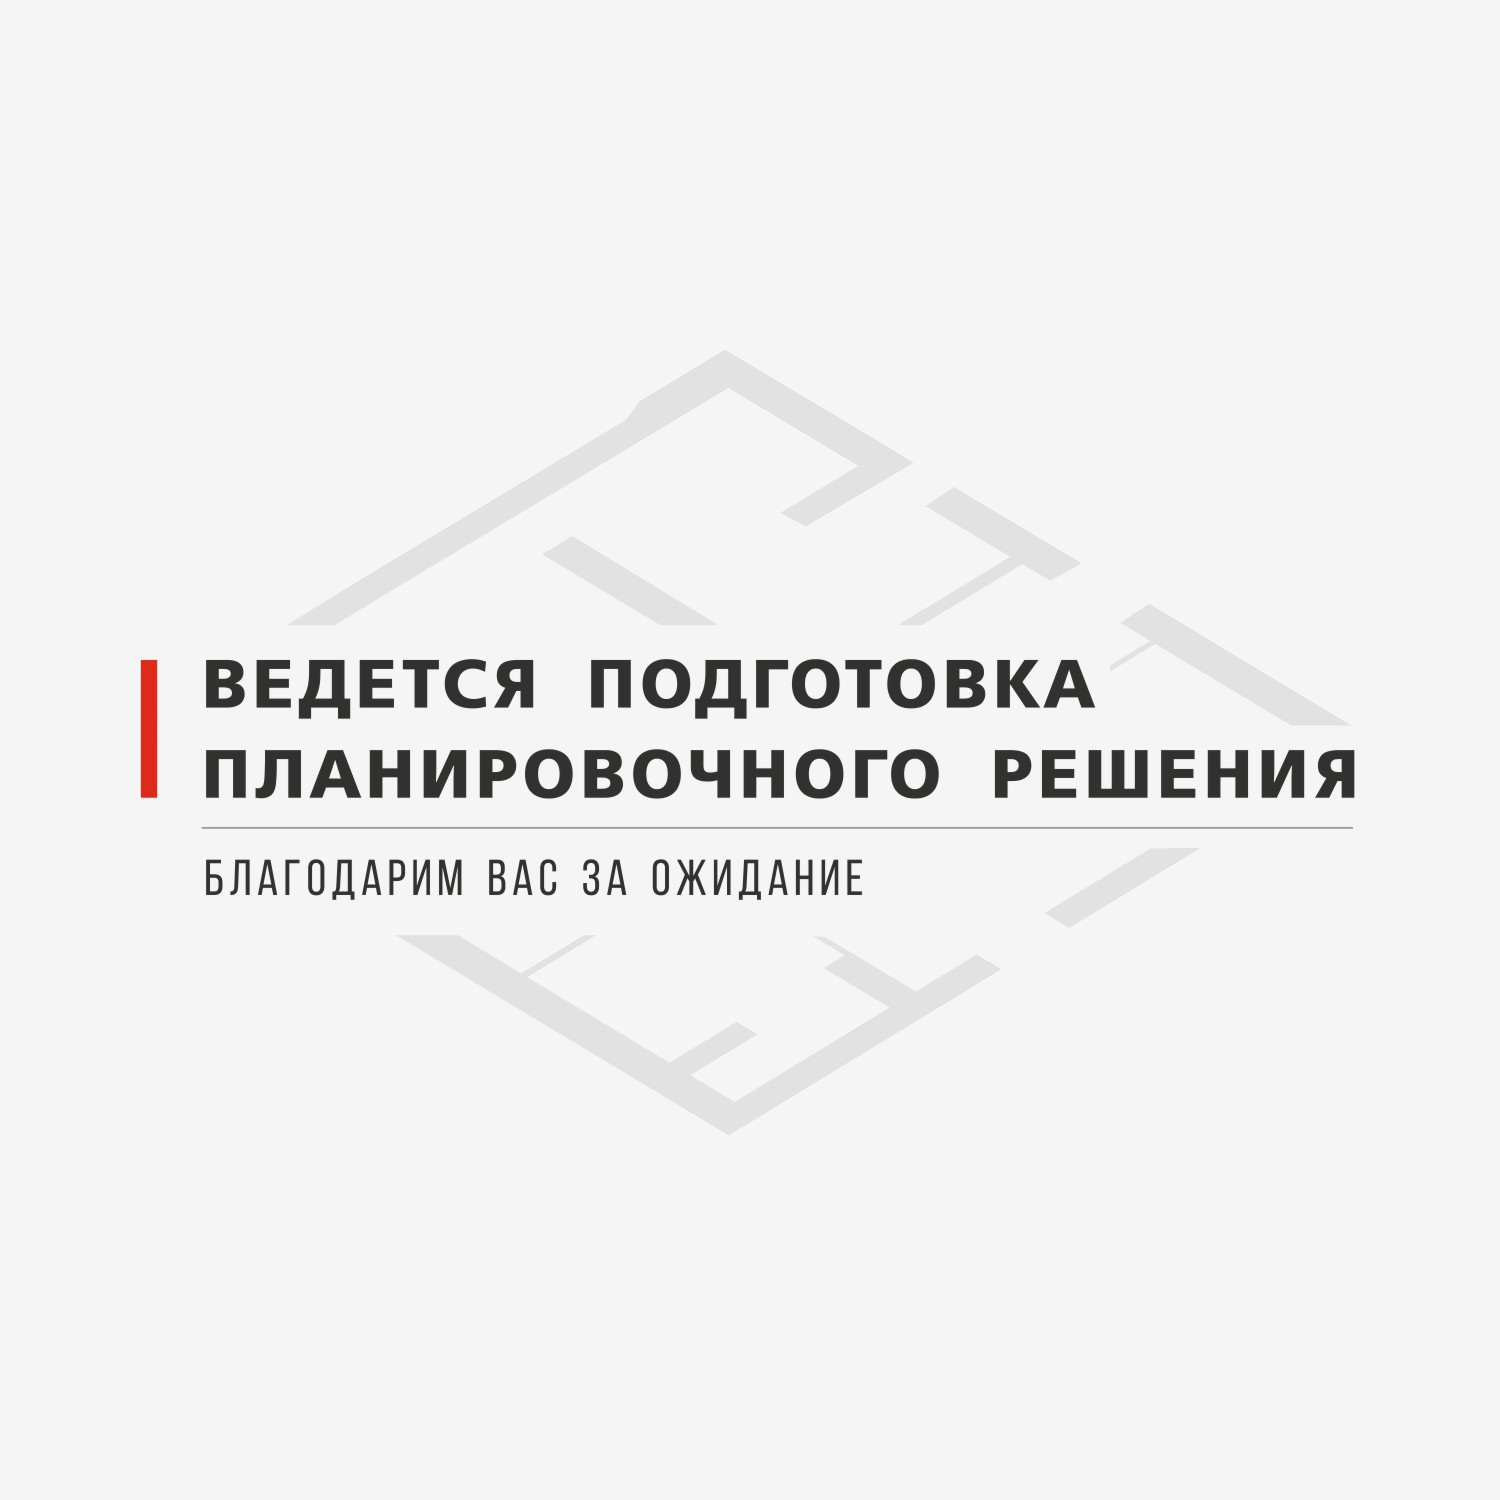 Купить однокомнатную квартиру в новостройке г Москва, ул Лобачевского, д 120 - World Real Estate Service «PUSH-KA», объявление №189303